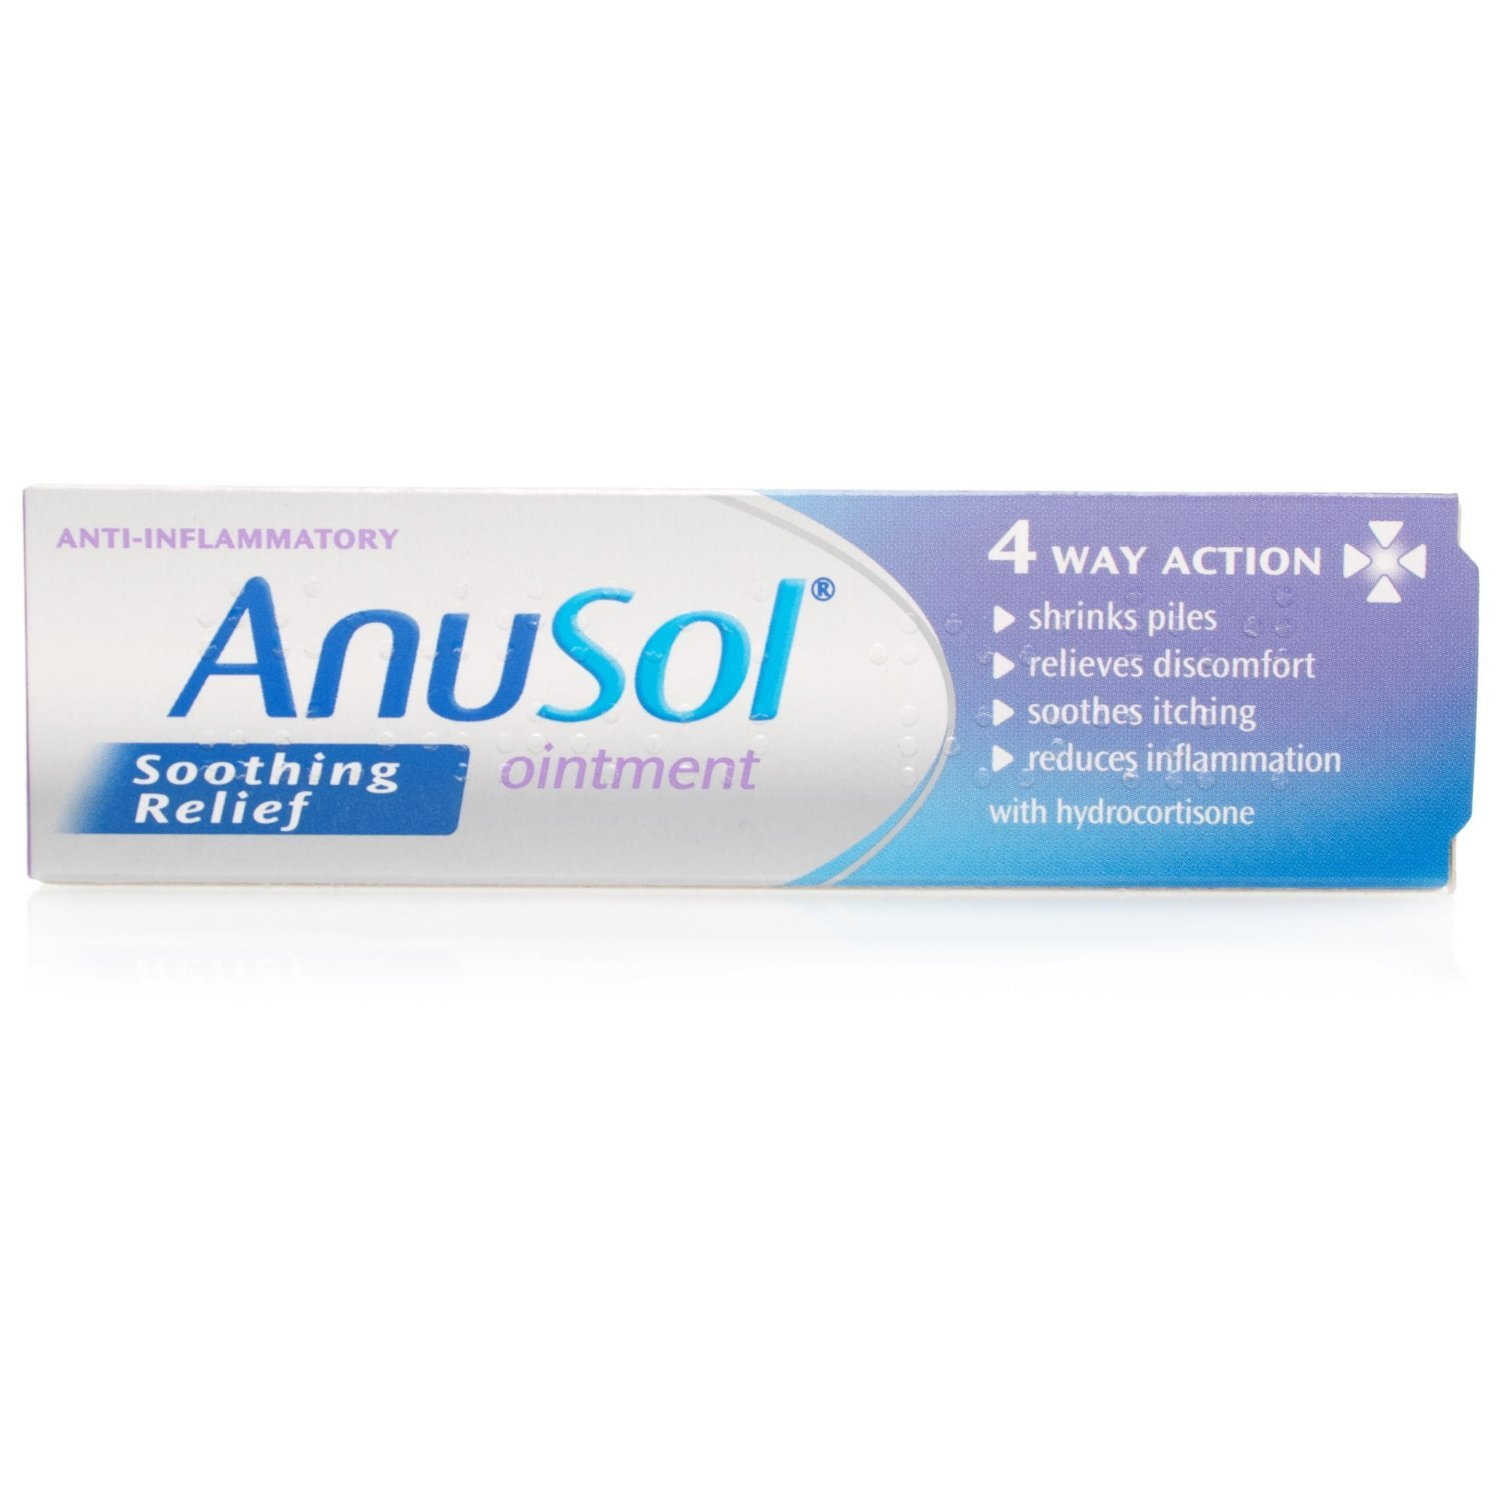 Anusol - Soothing Relief Ointment - Shrinks Piles, Relieves Discomfort, Soothes Itching and Reduces Inflammation - 15 g